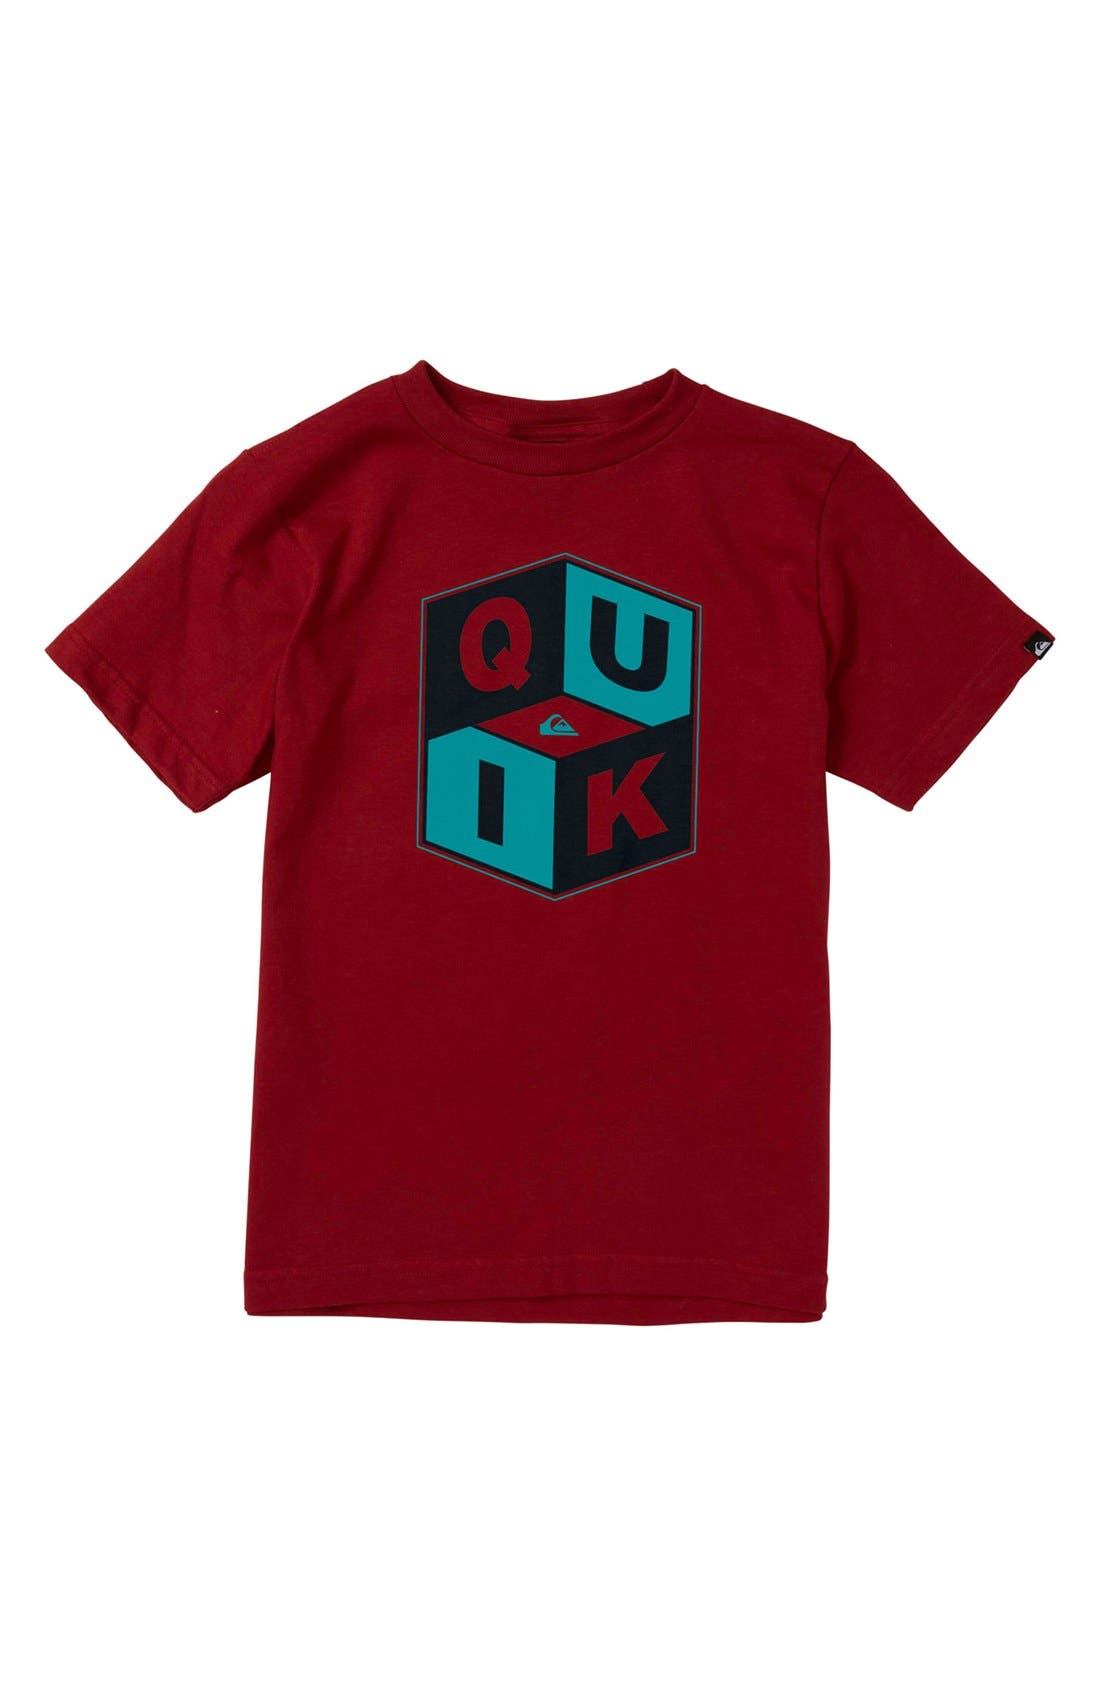 Alternate Image 1 Selected - Quiksilver 'Pop Command' T-Shirt (Toddler Boys)